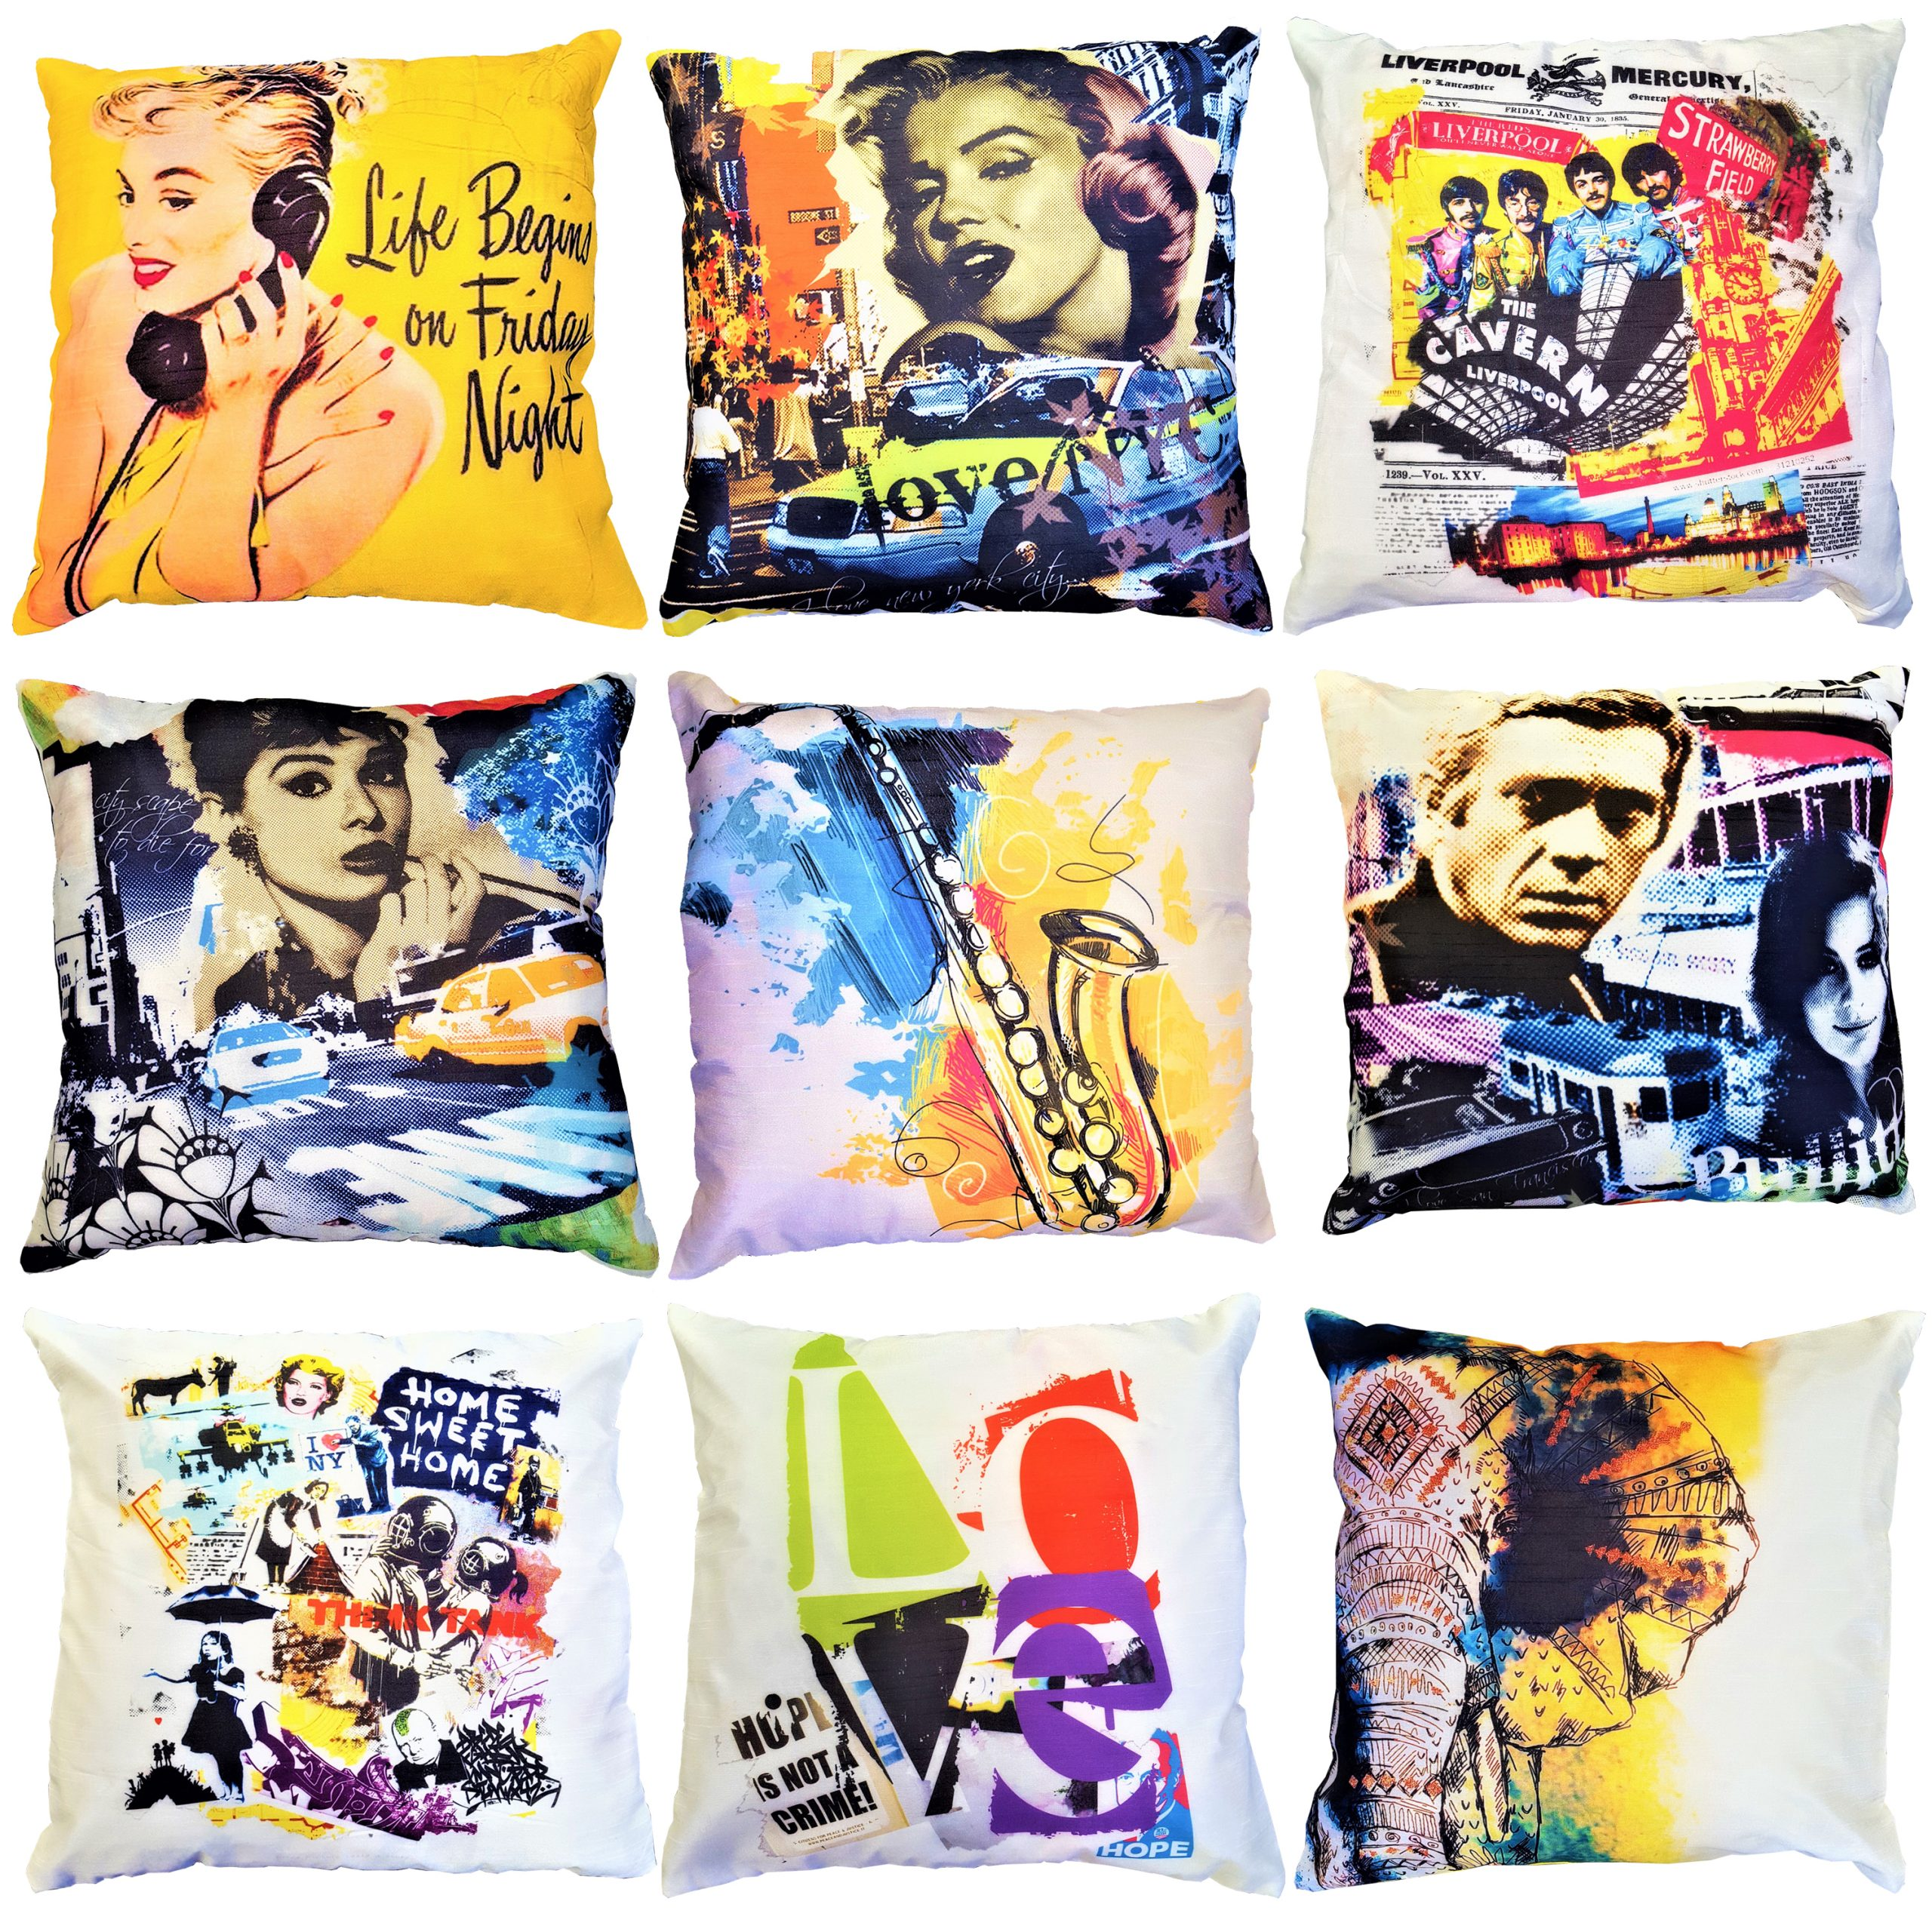 About Home Printed Faux Silk Cushions / cushion covers with padded foam